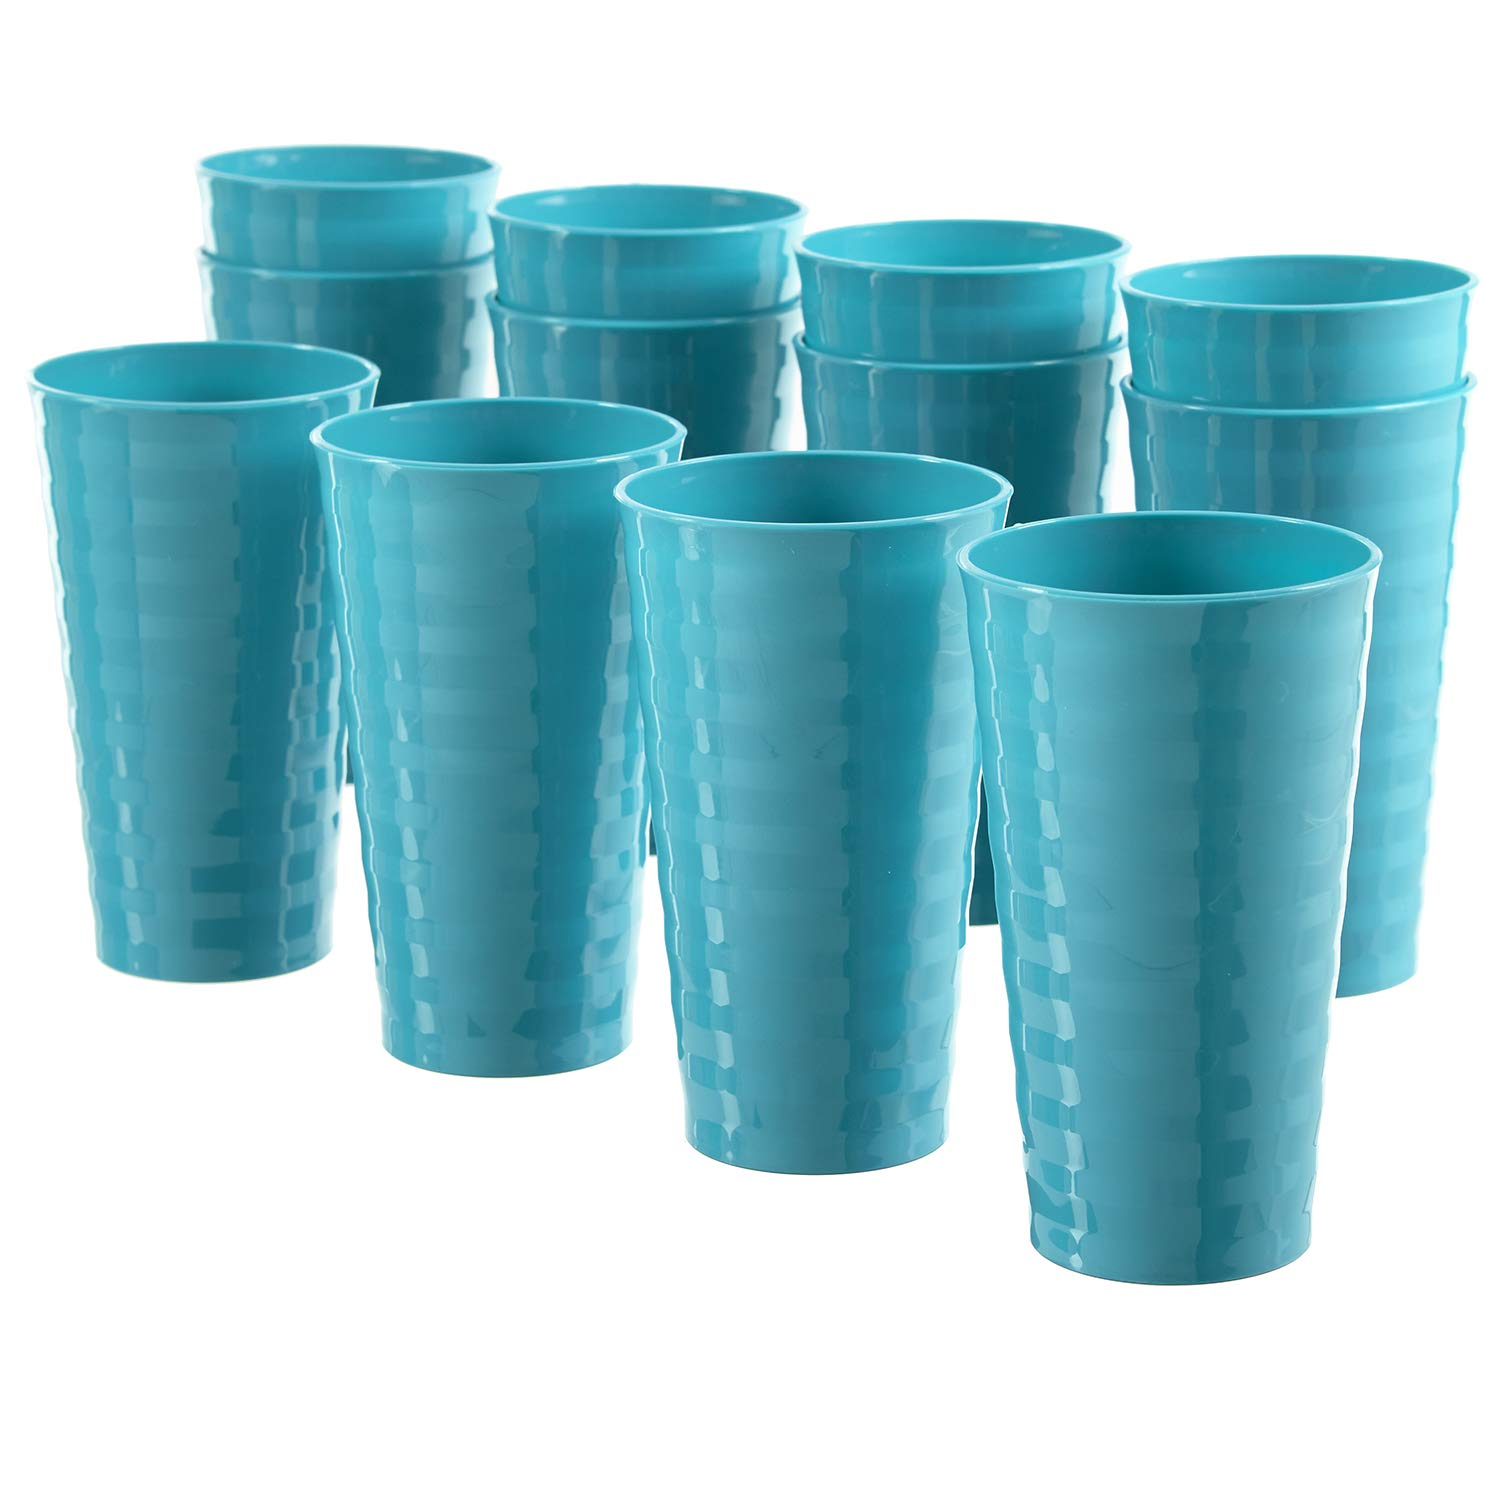 Splash 20-ounce Unbreakable Plastic Tumblers | set of 12 Teal